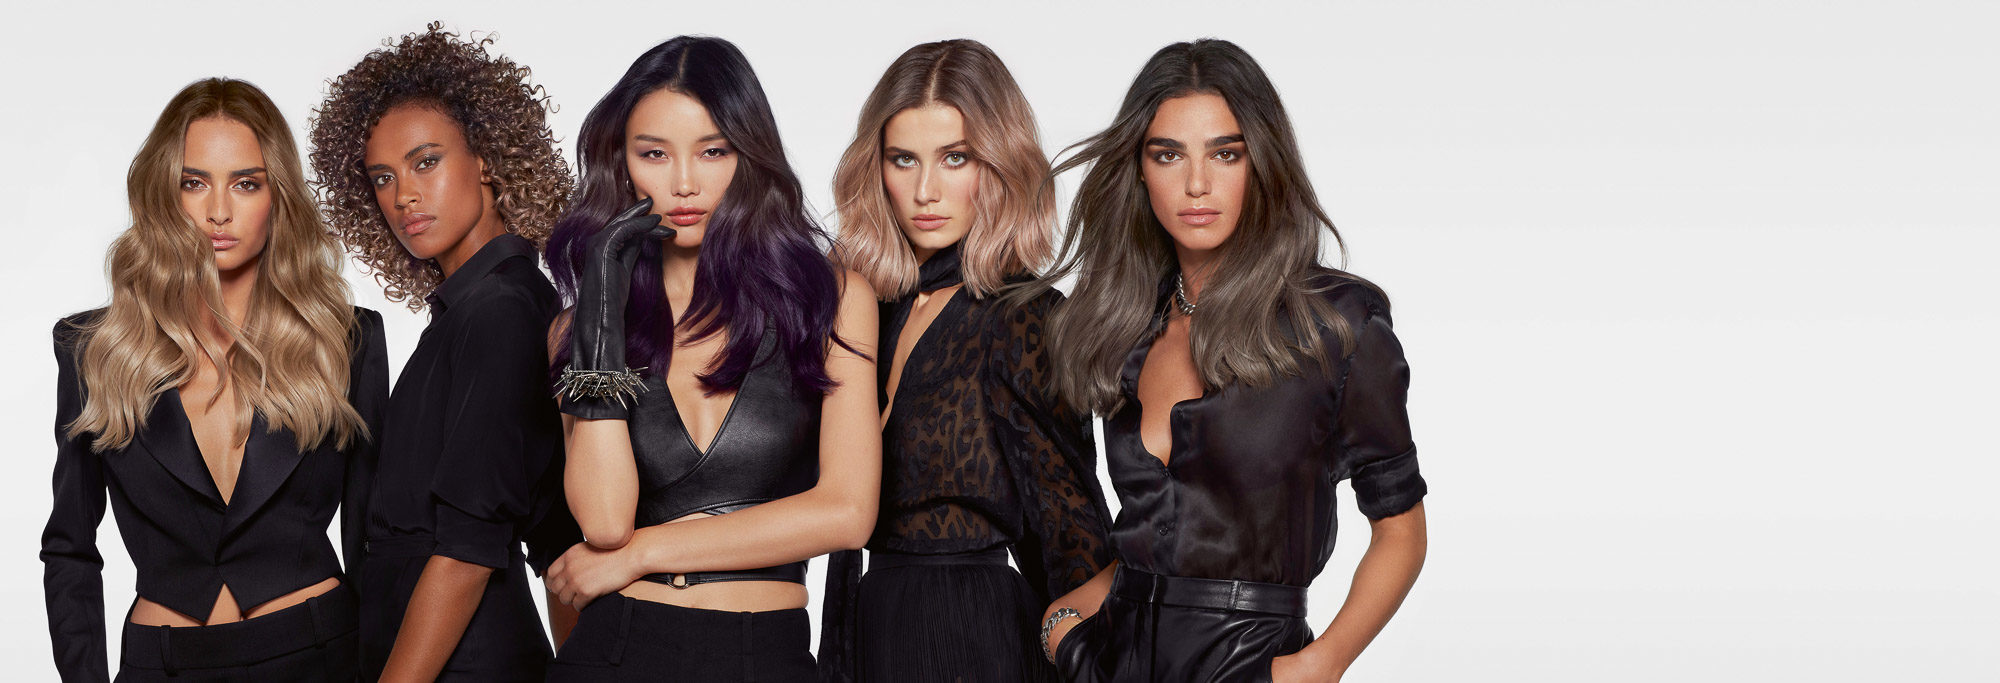 Individuelle Balayage-, Contouring- oder auch Volume-Coloring-Techniken